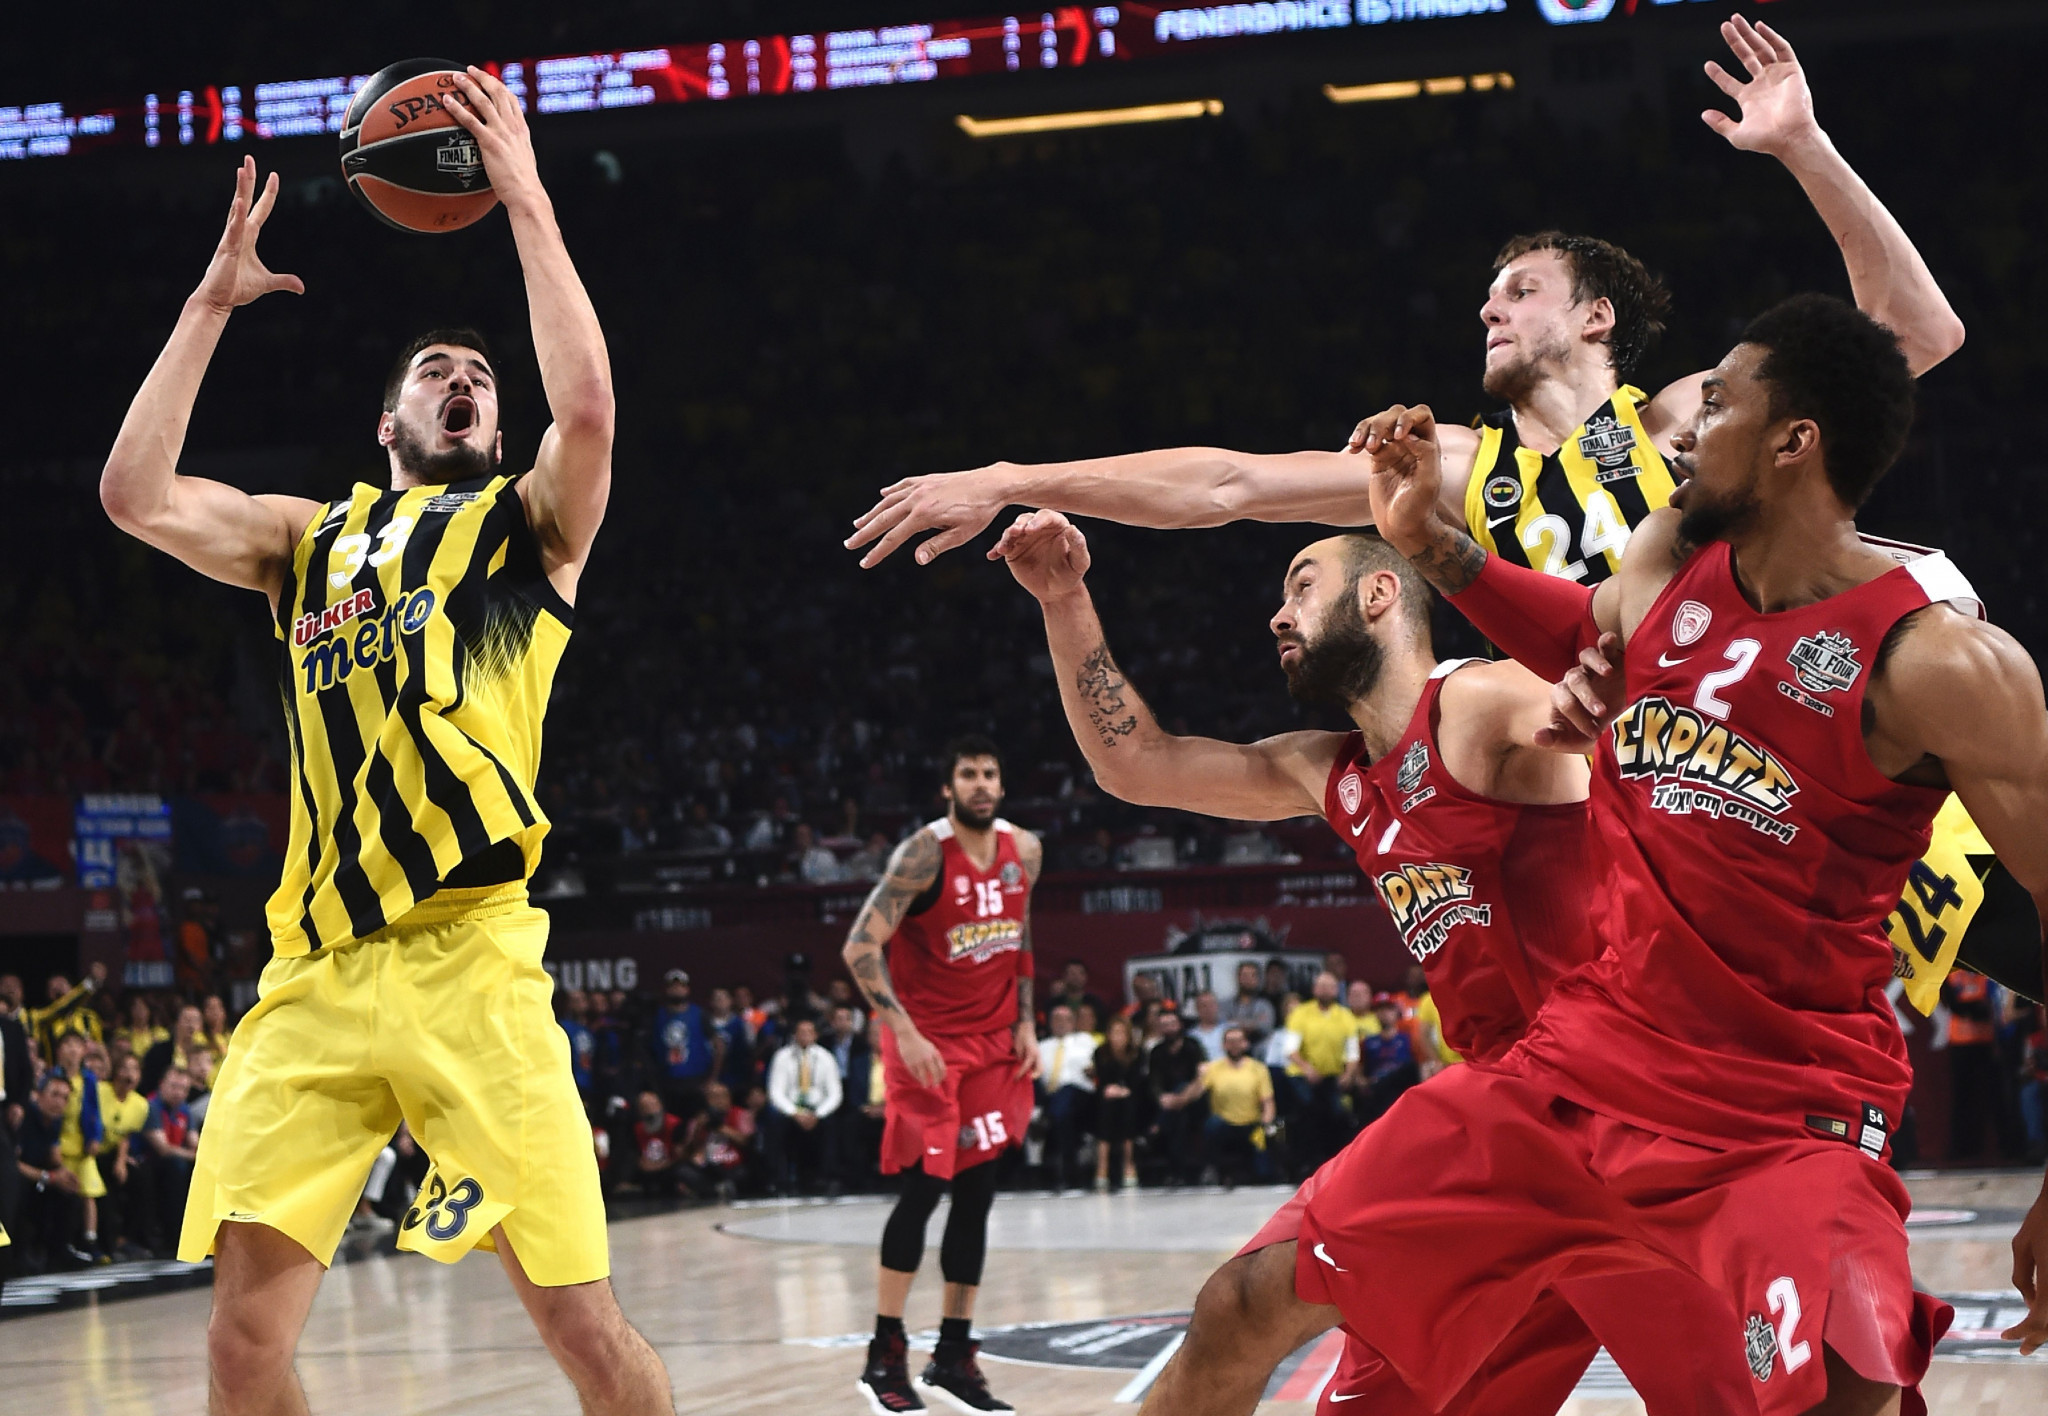 Changes to the FIBA calendar have caused clashes with the Euroleague ©FIBA